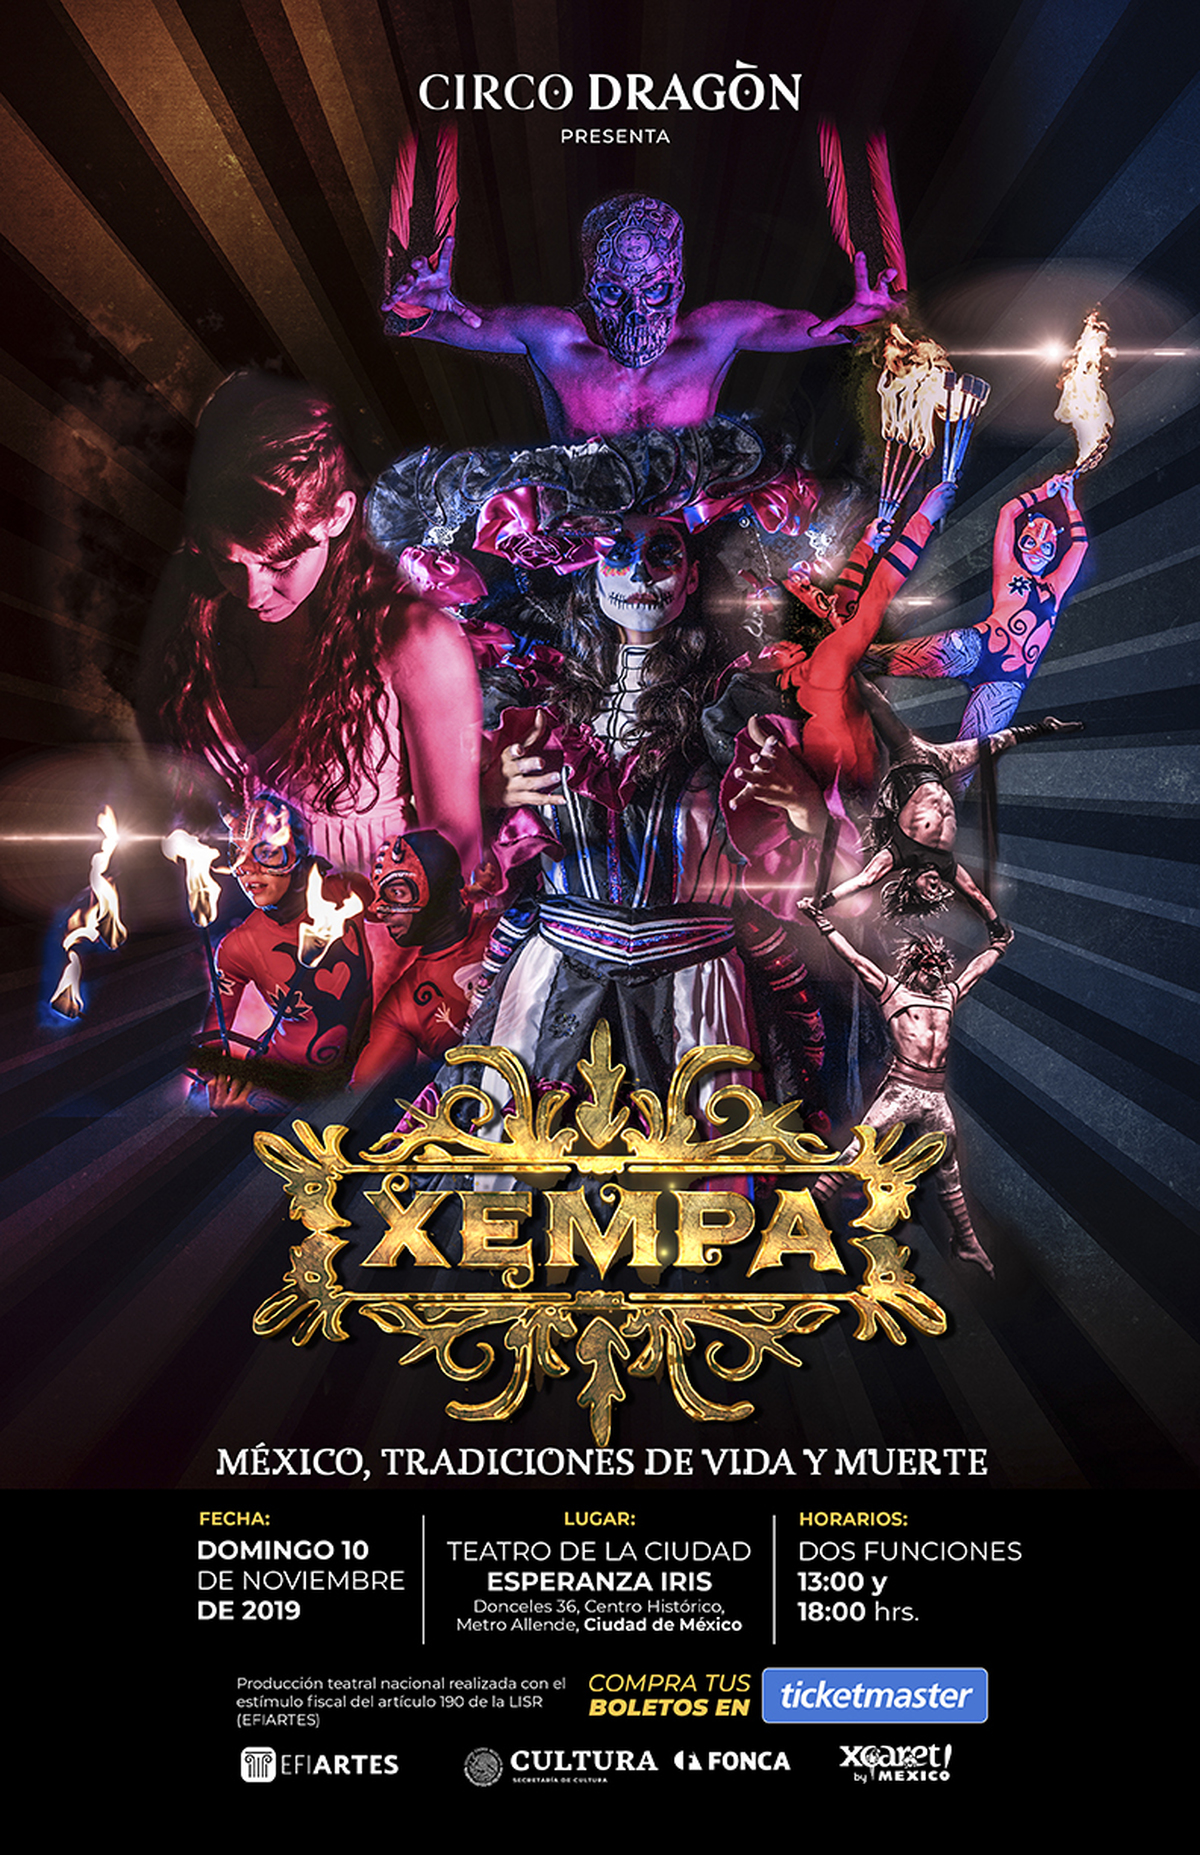 XEMPA; life and death traditions